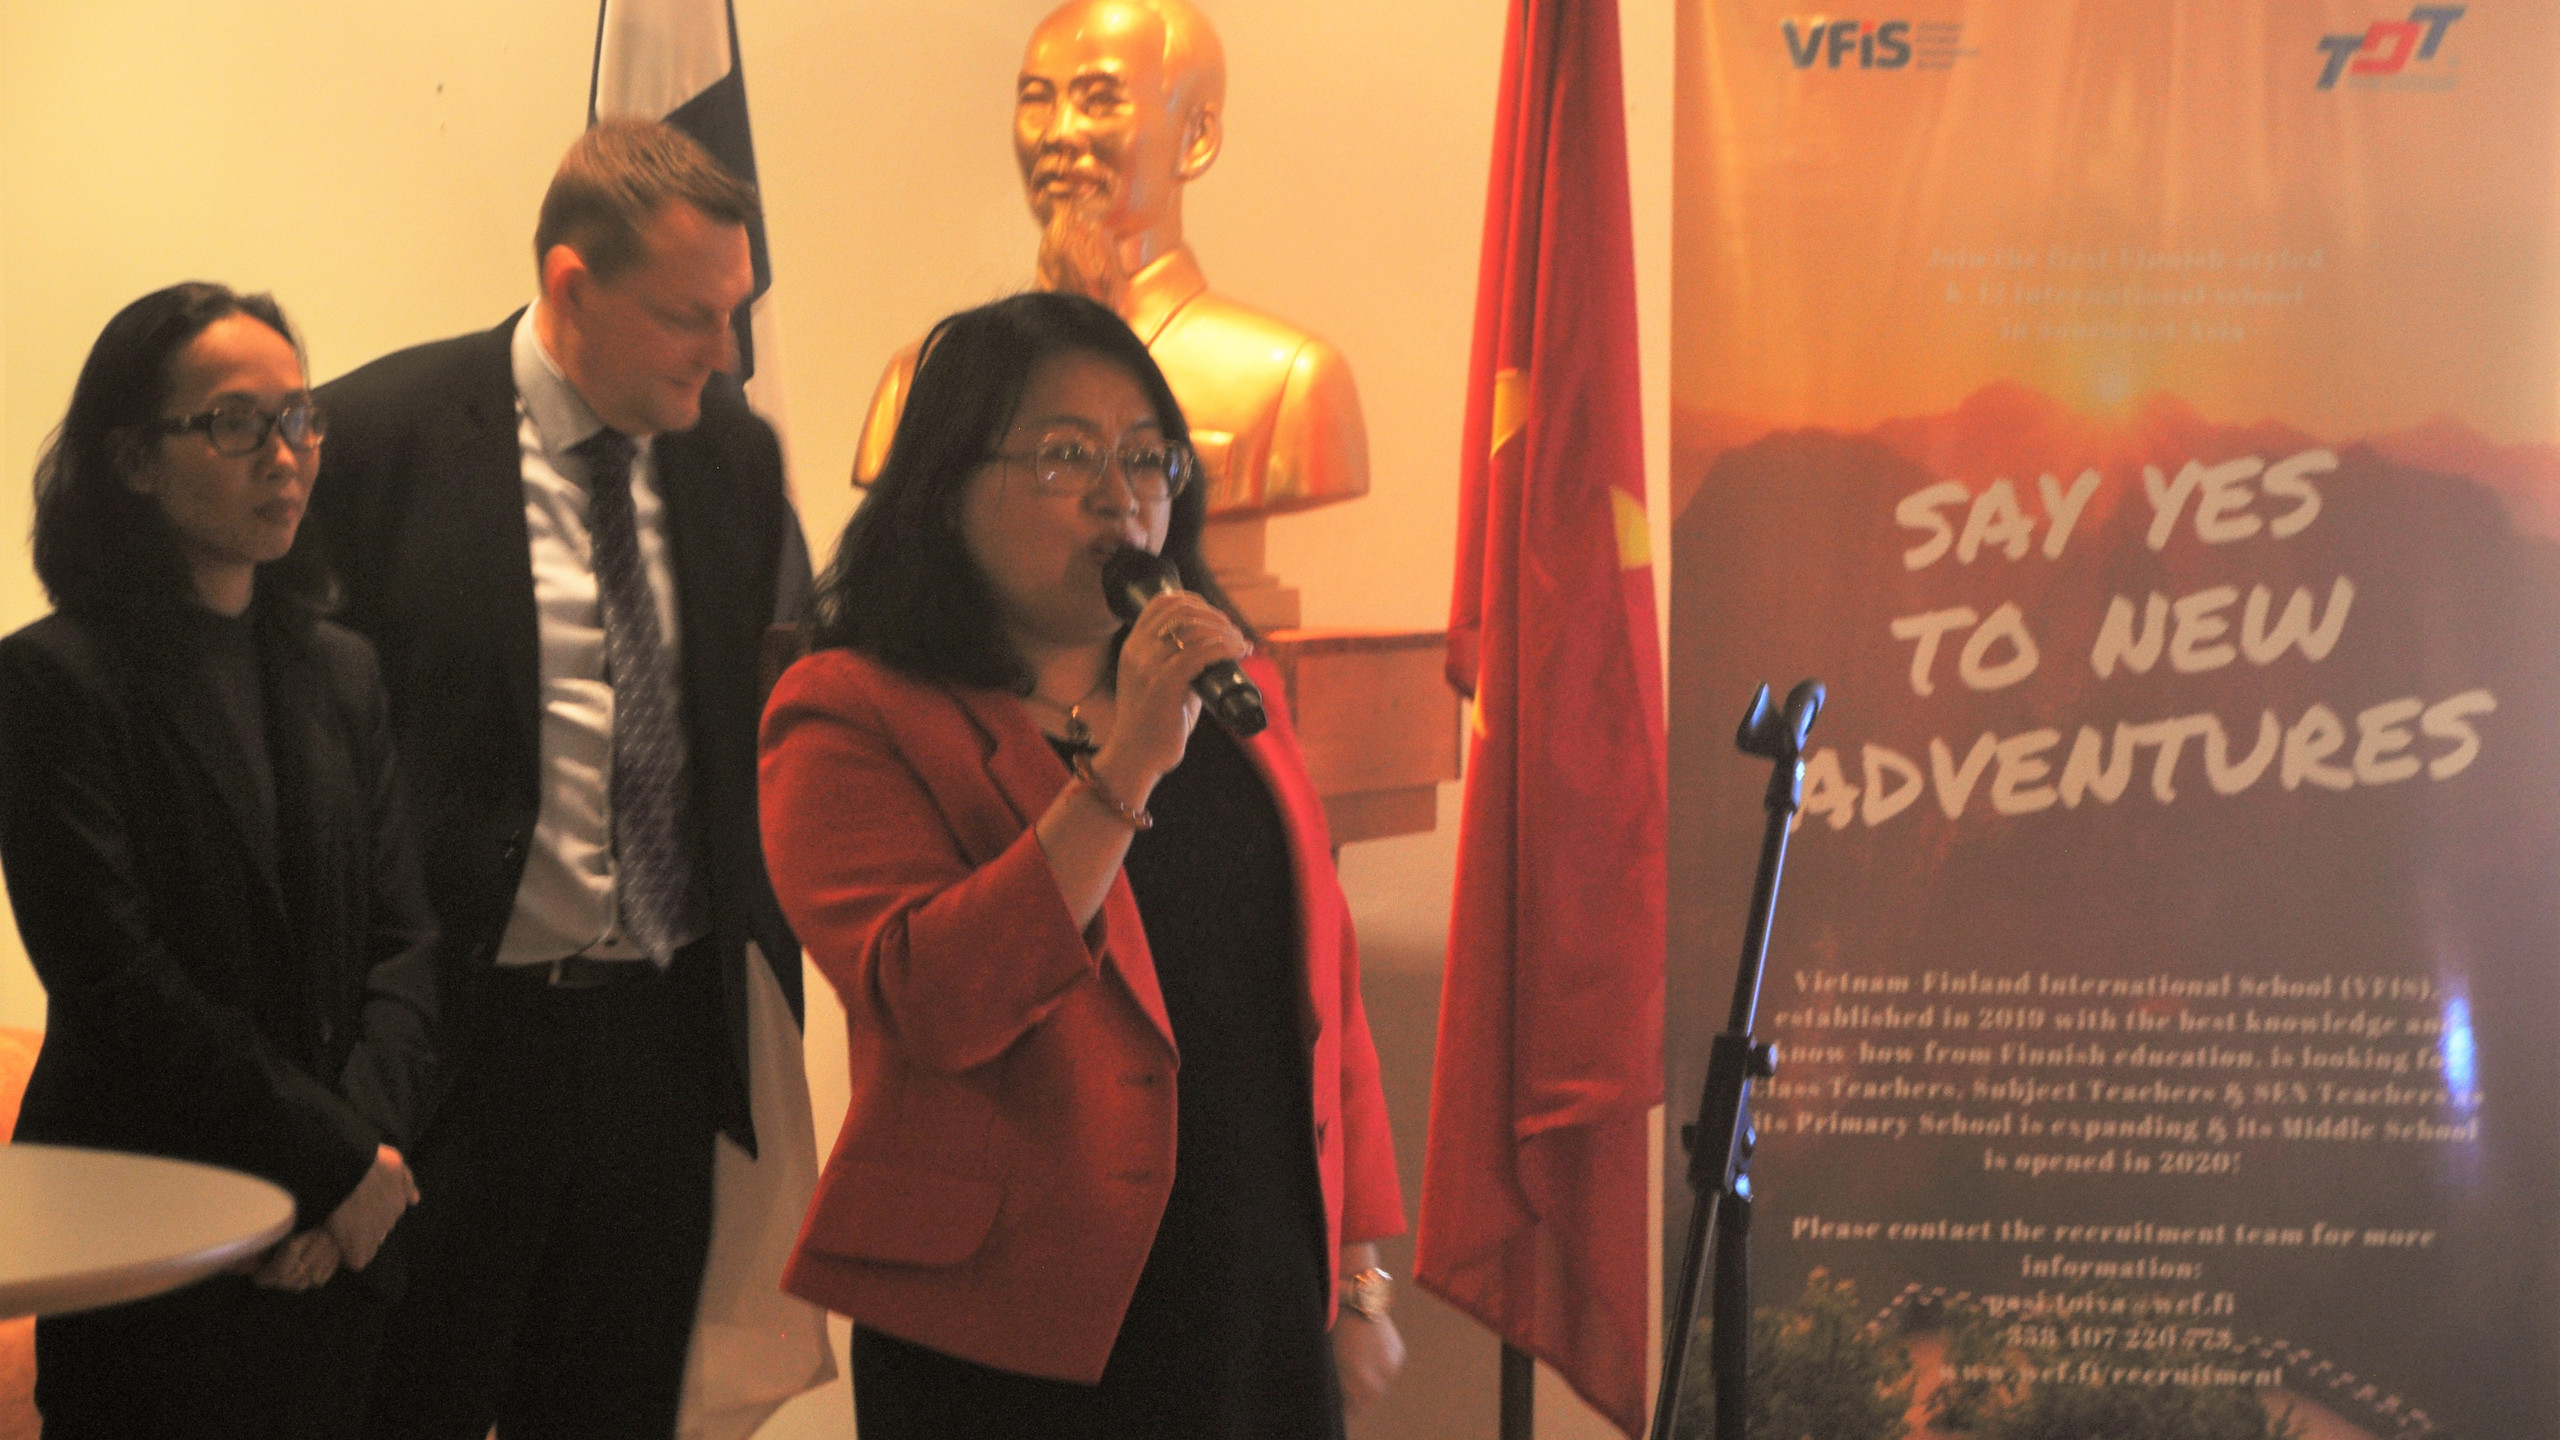 Madam Pham Thi Ngoc Bich, Vietnamese Ambassador to Finland delivered the first keynote speech, talking about cooperation between Vietnam and Finland since 1973, particicularly in education.